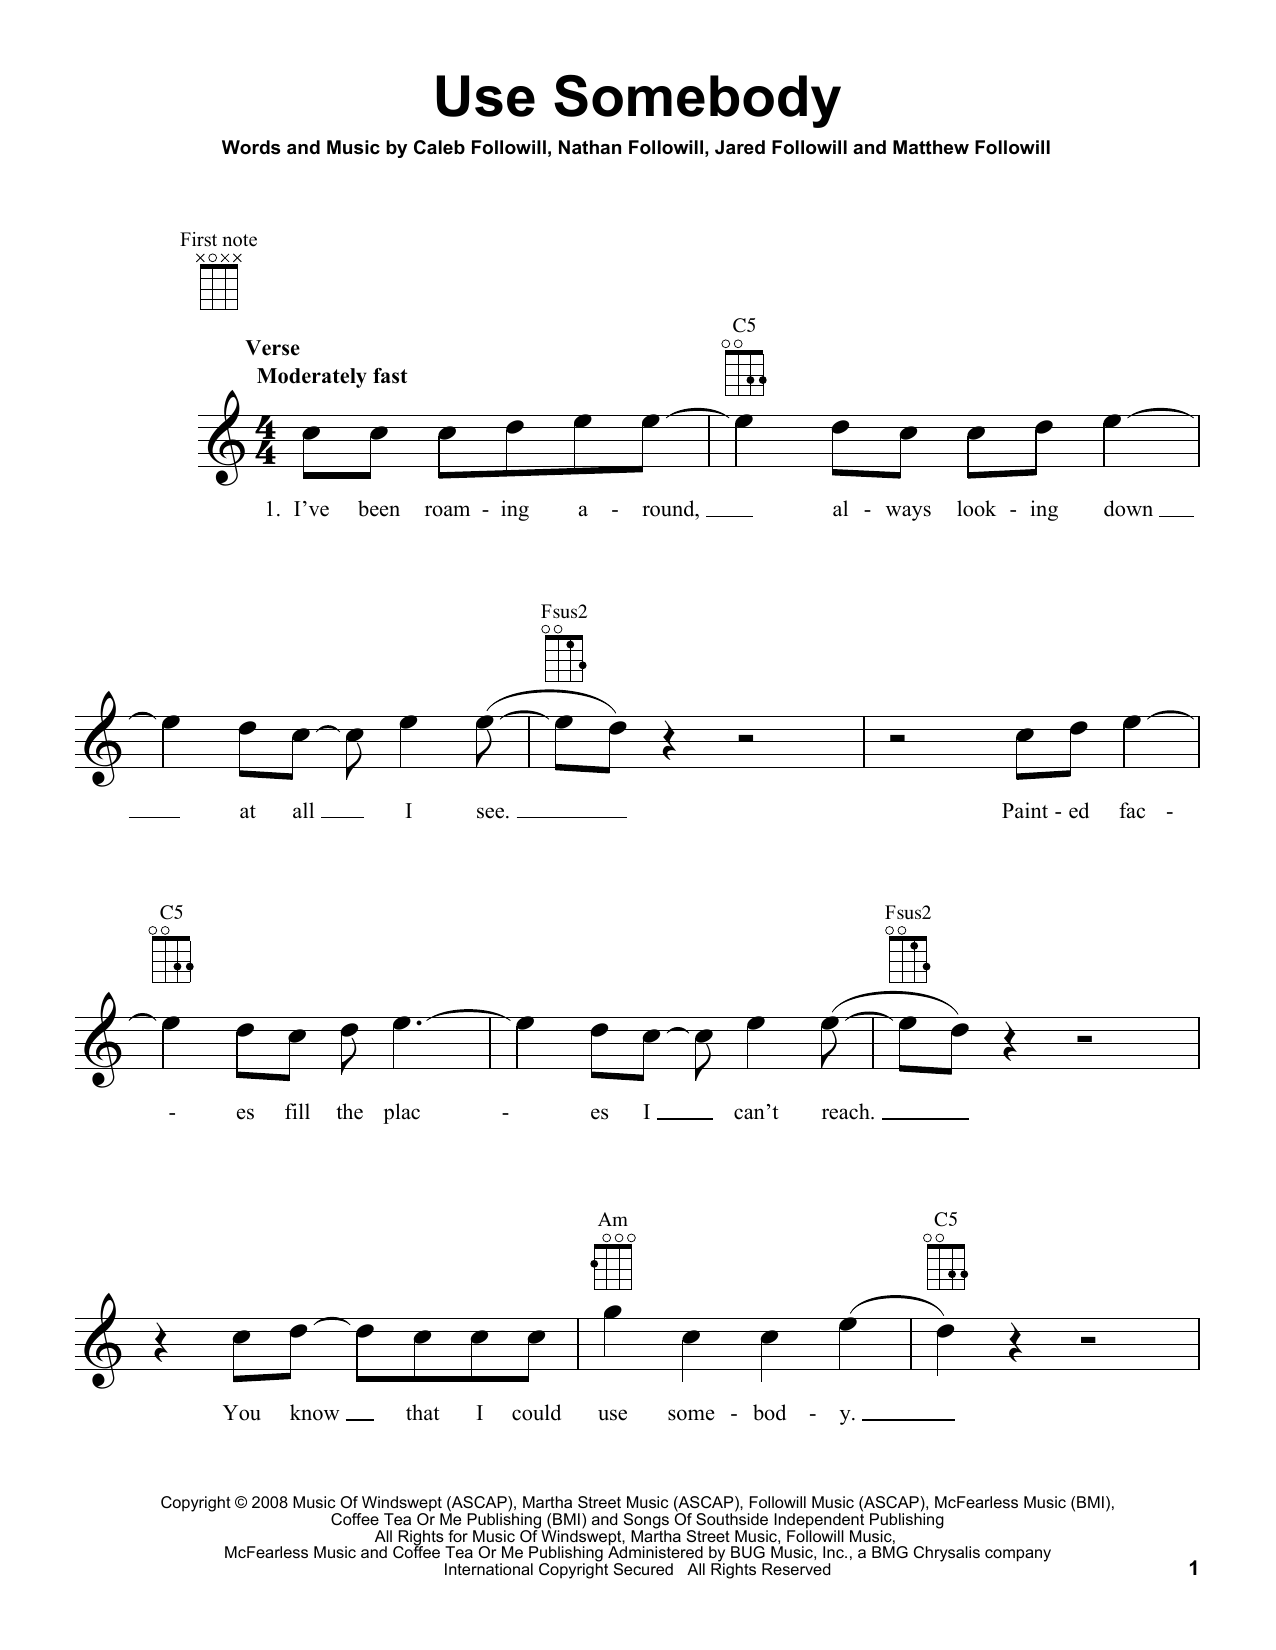 Use Somebody Sheet Music